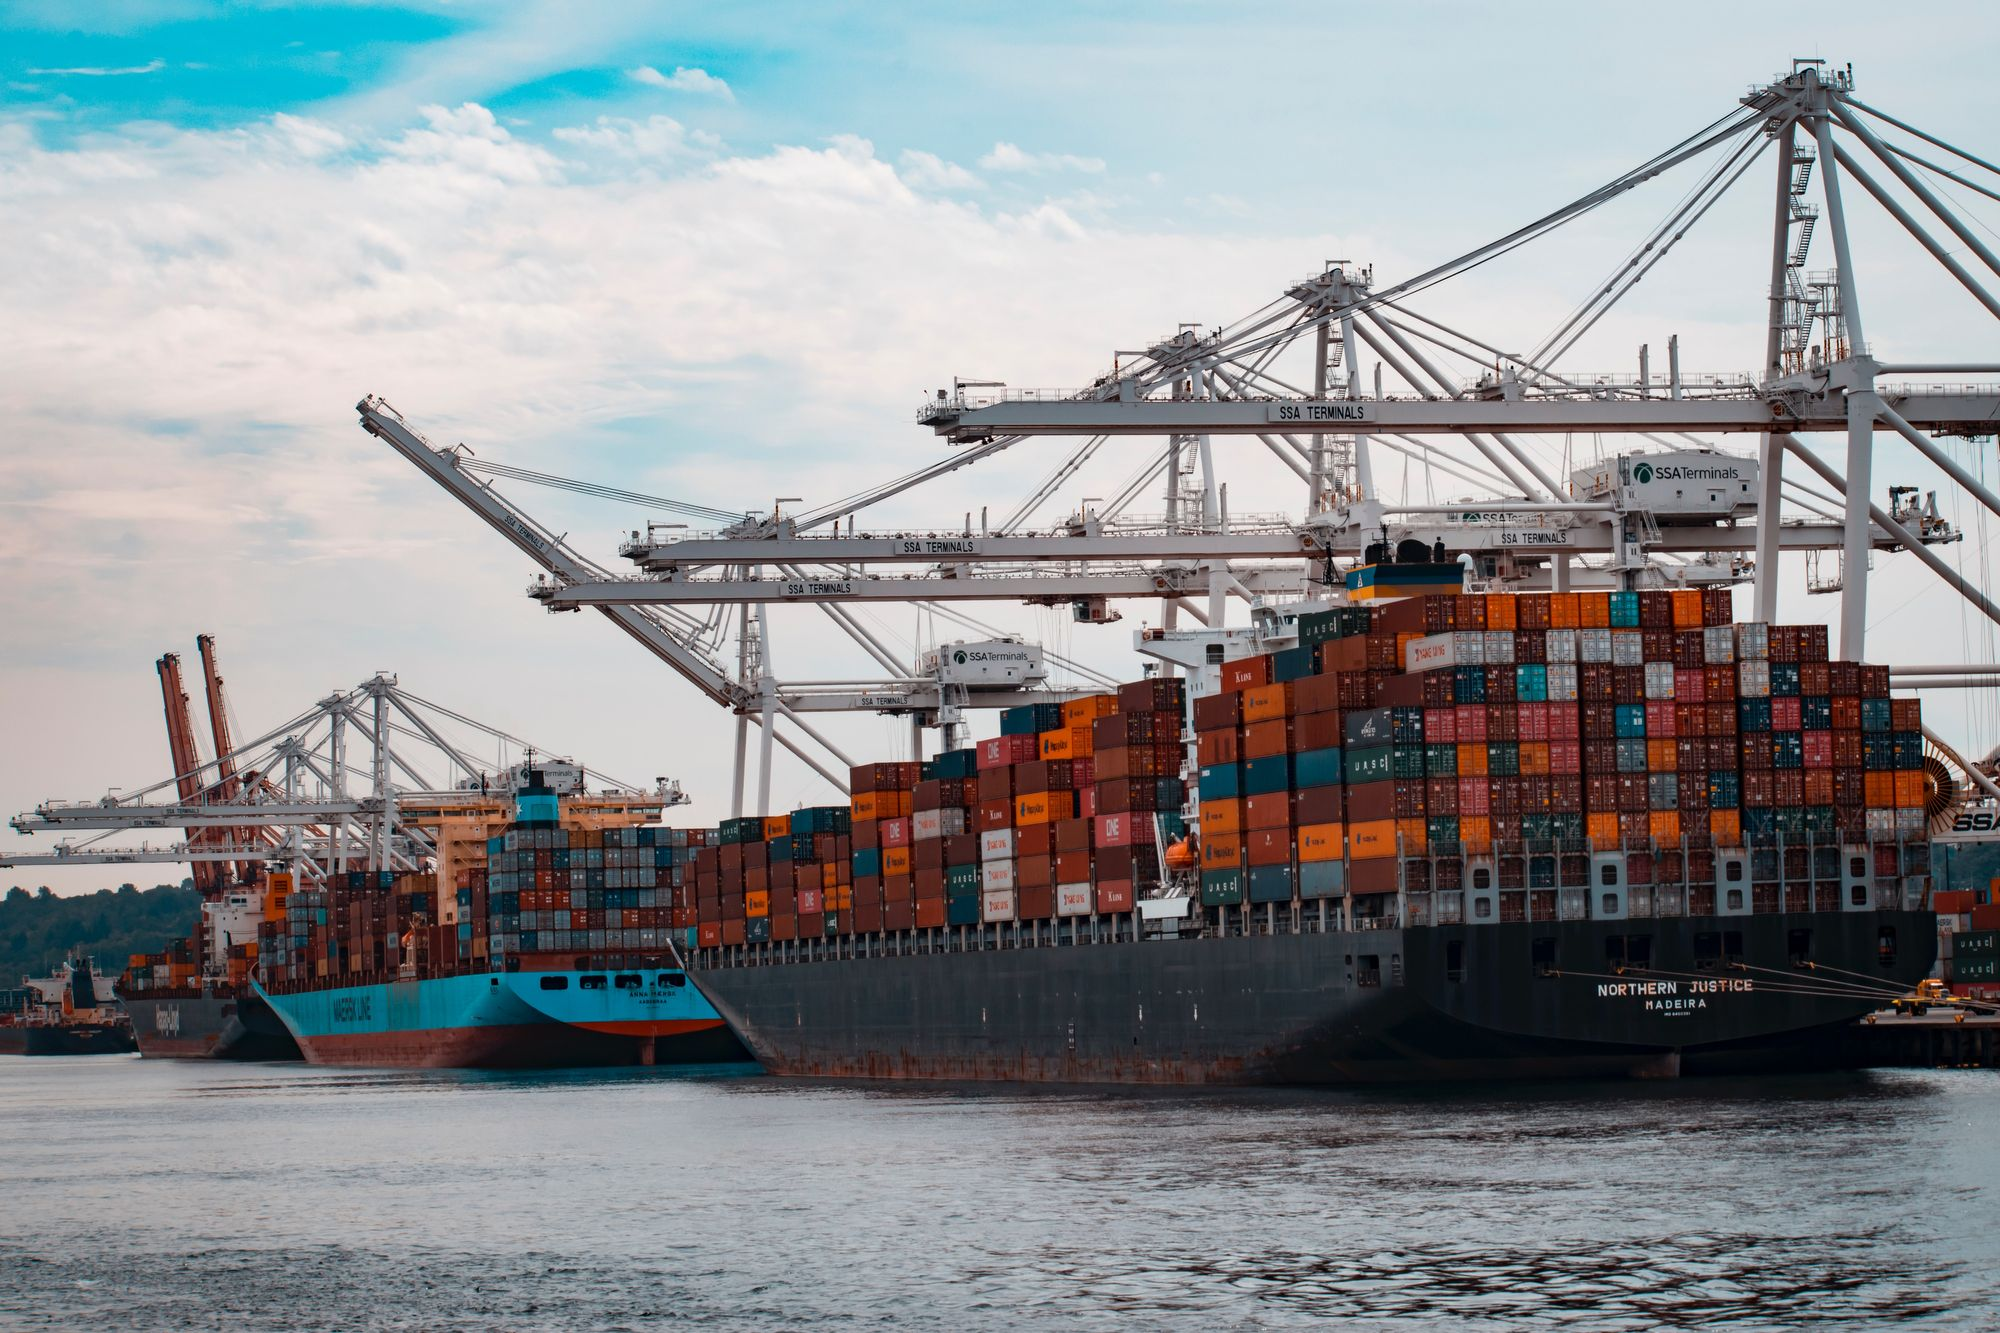 Shipping prices are surging due to shortages of container space